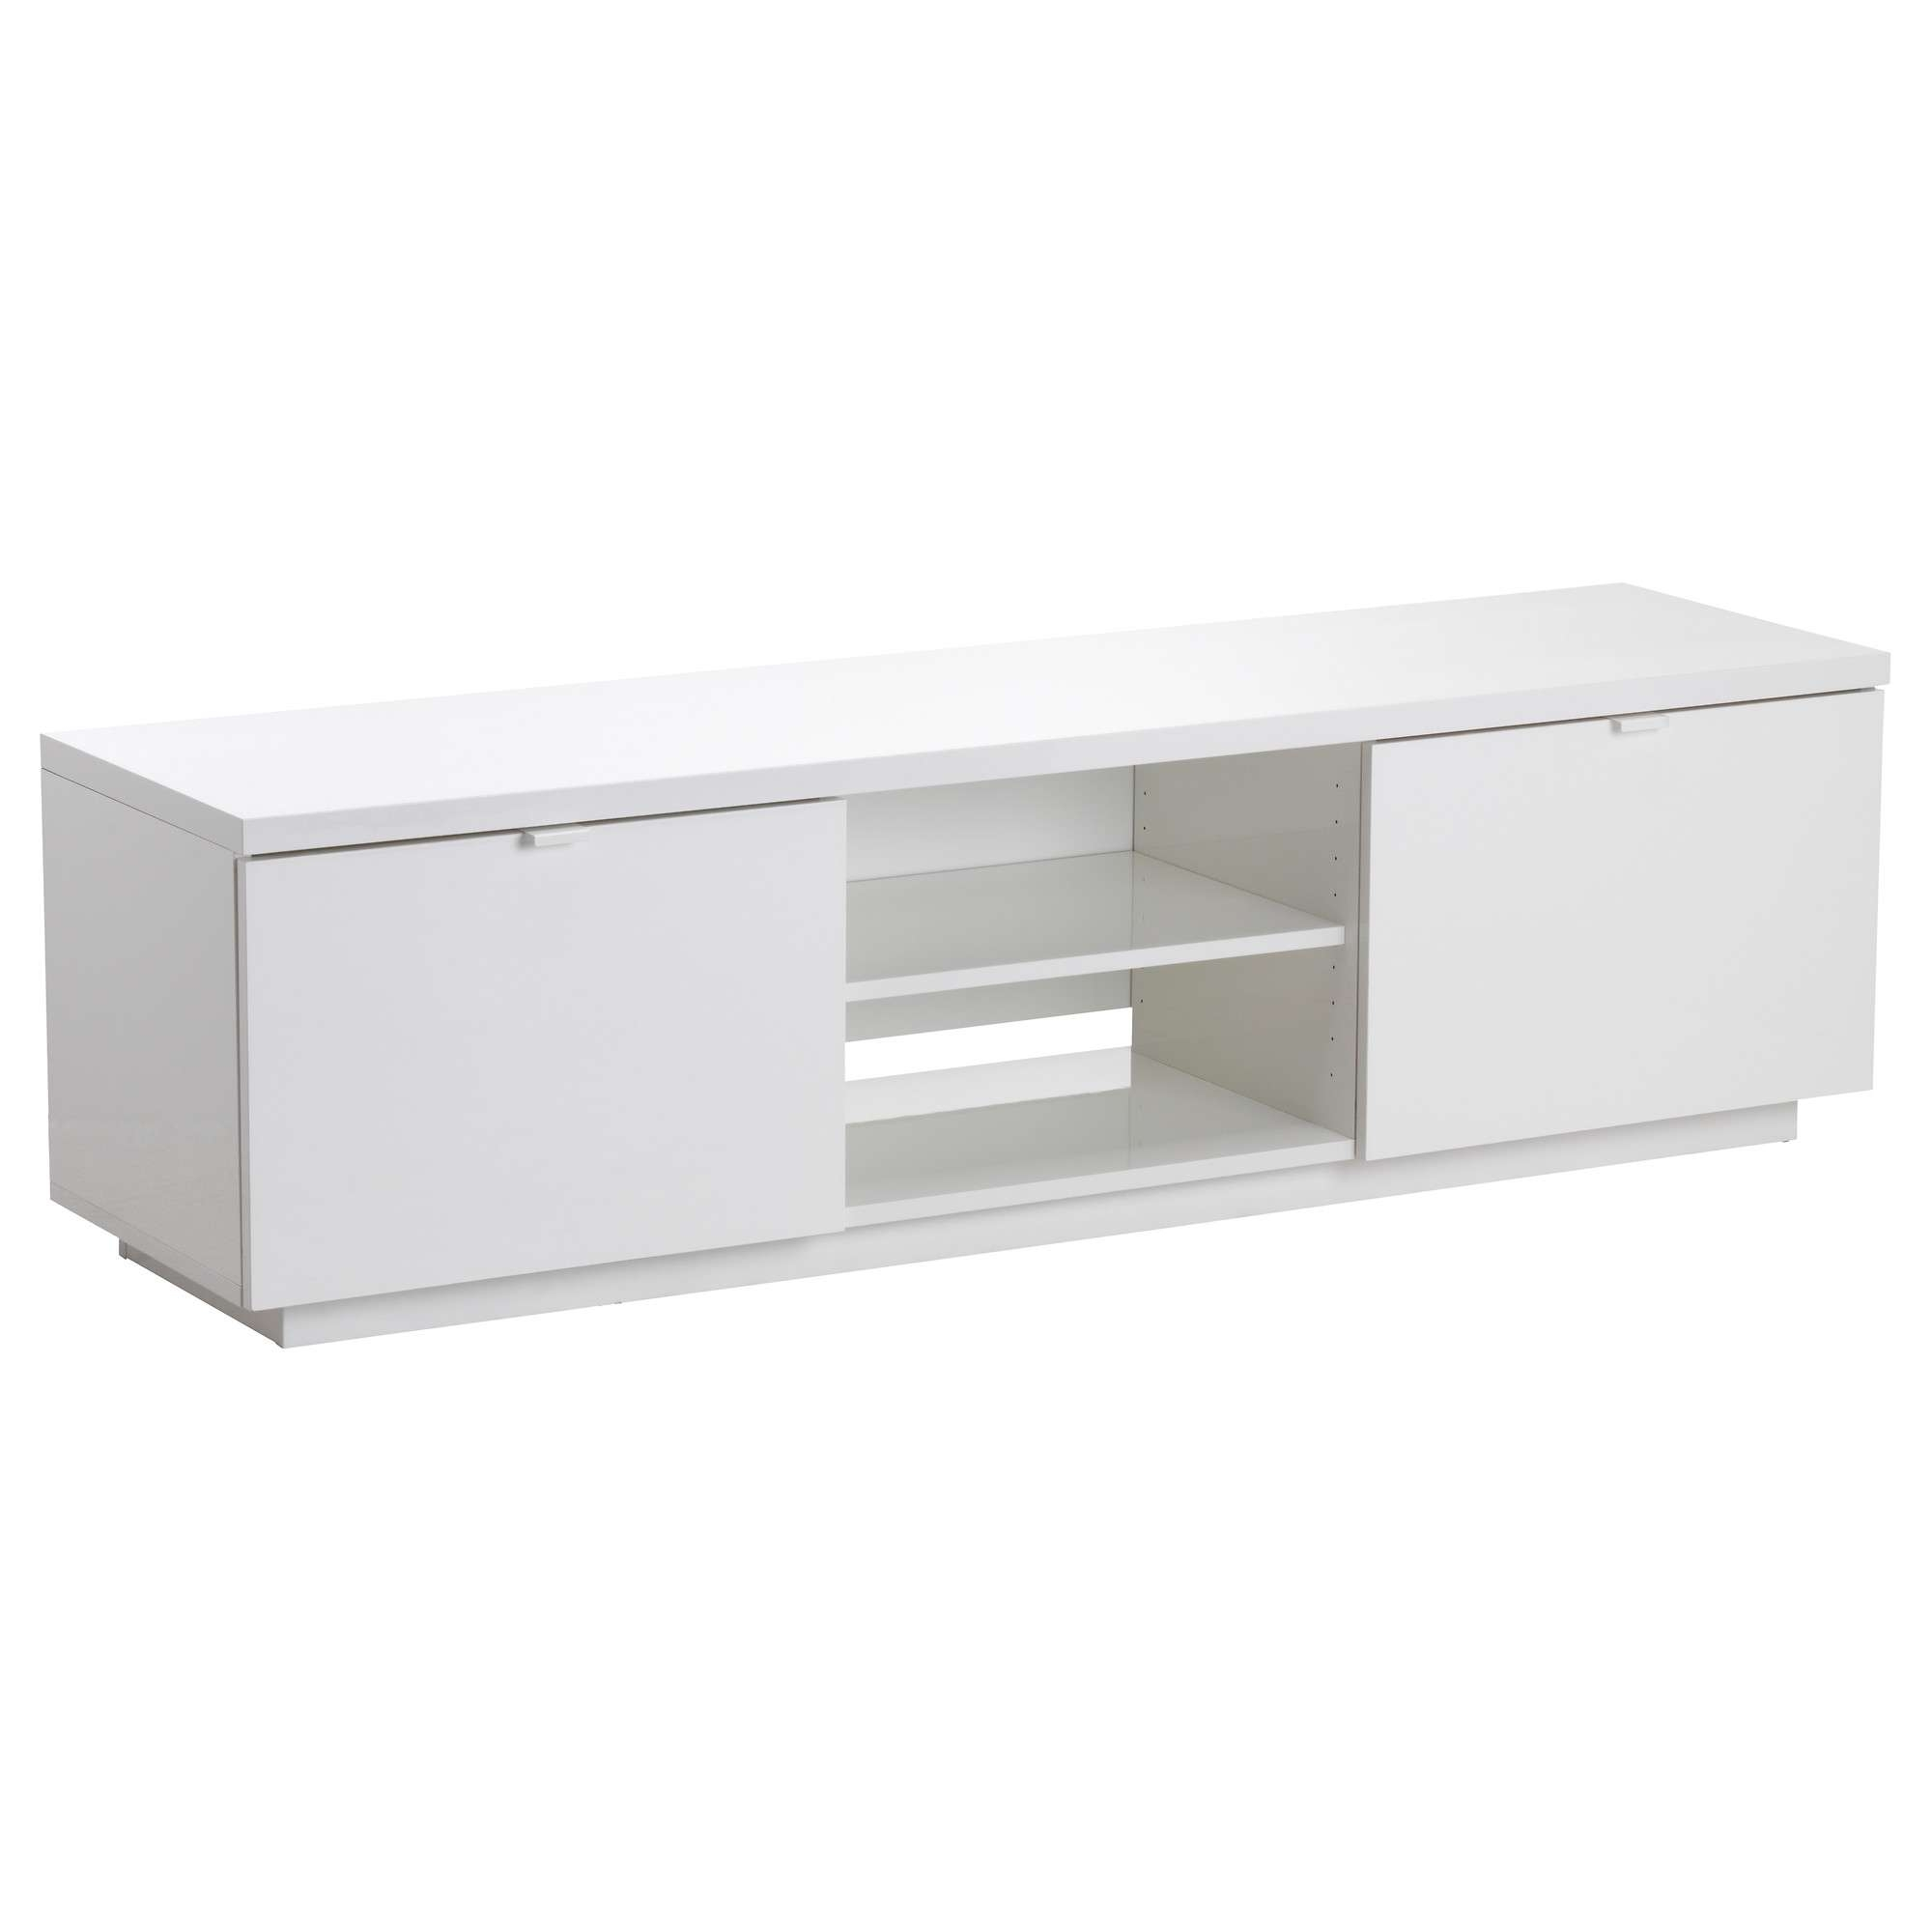 Byås Tv Bench High Gloss White 160X42X45 Cm – Ikea Throughout White Gloss Tv Cabinets (View 2 of 20)